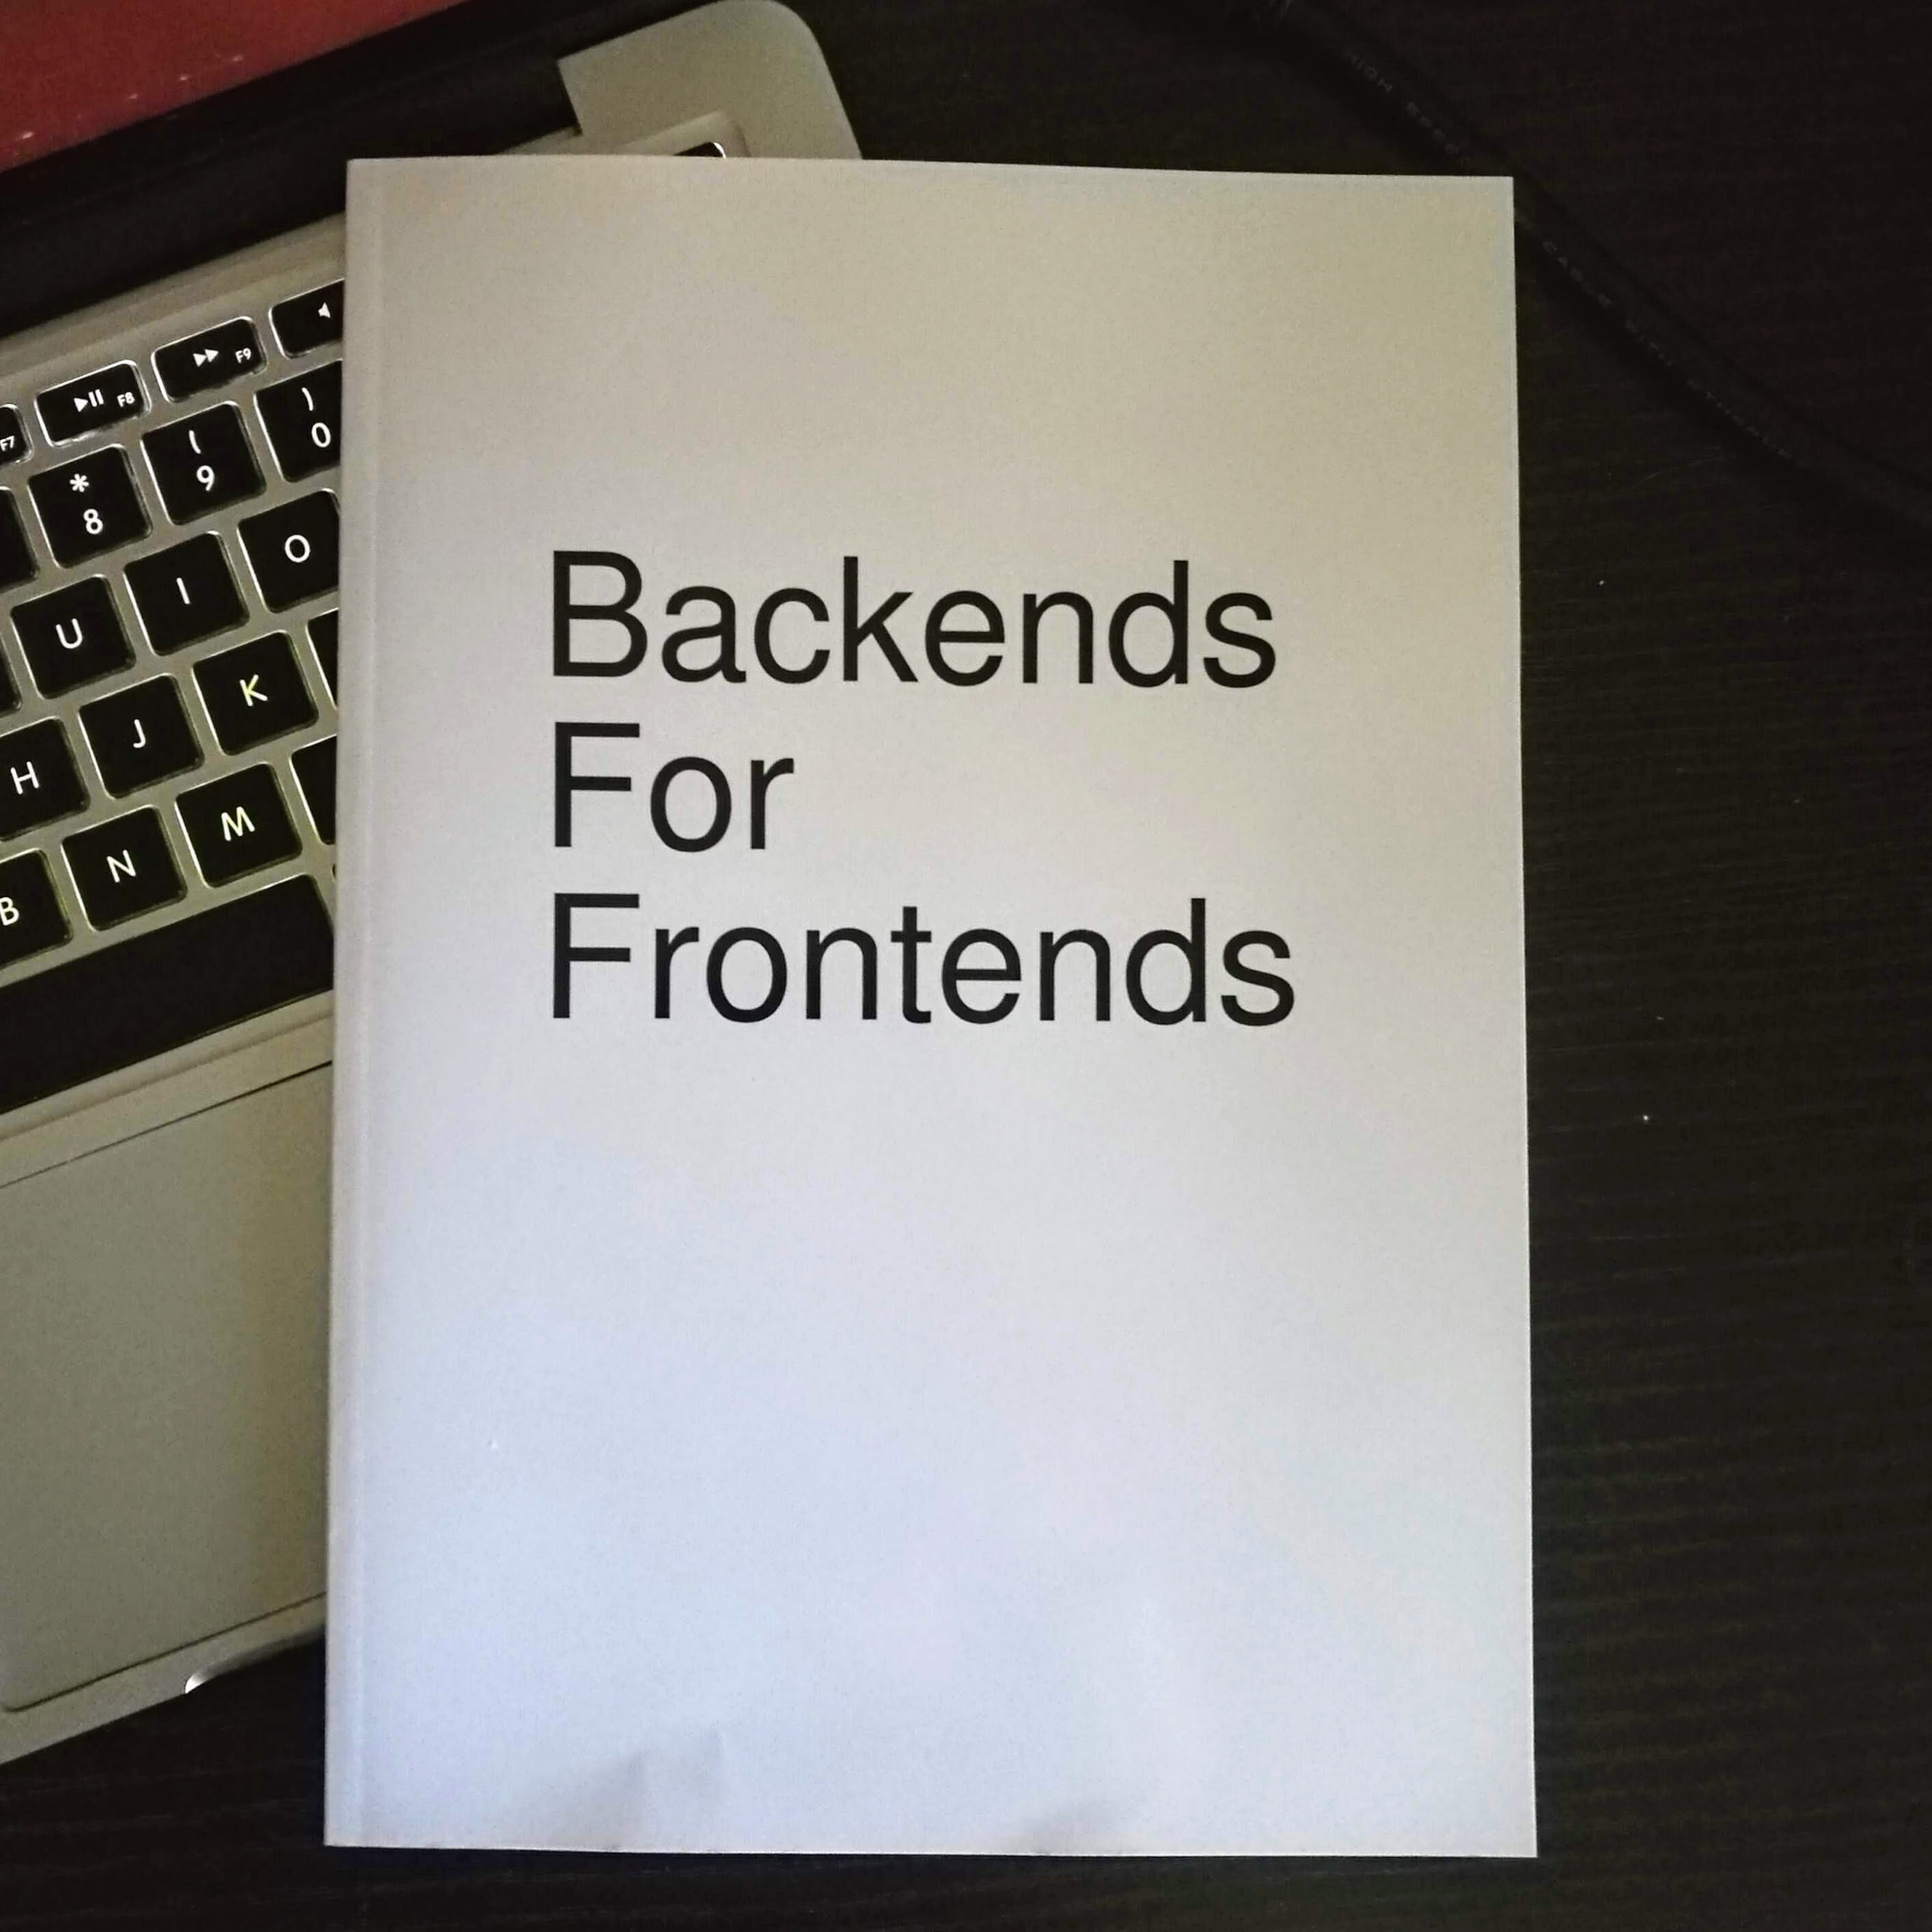 Backends For Frontends